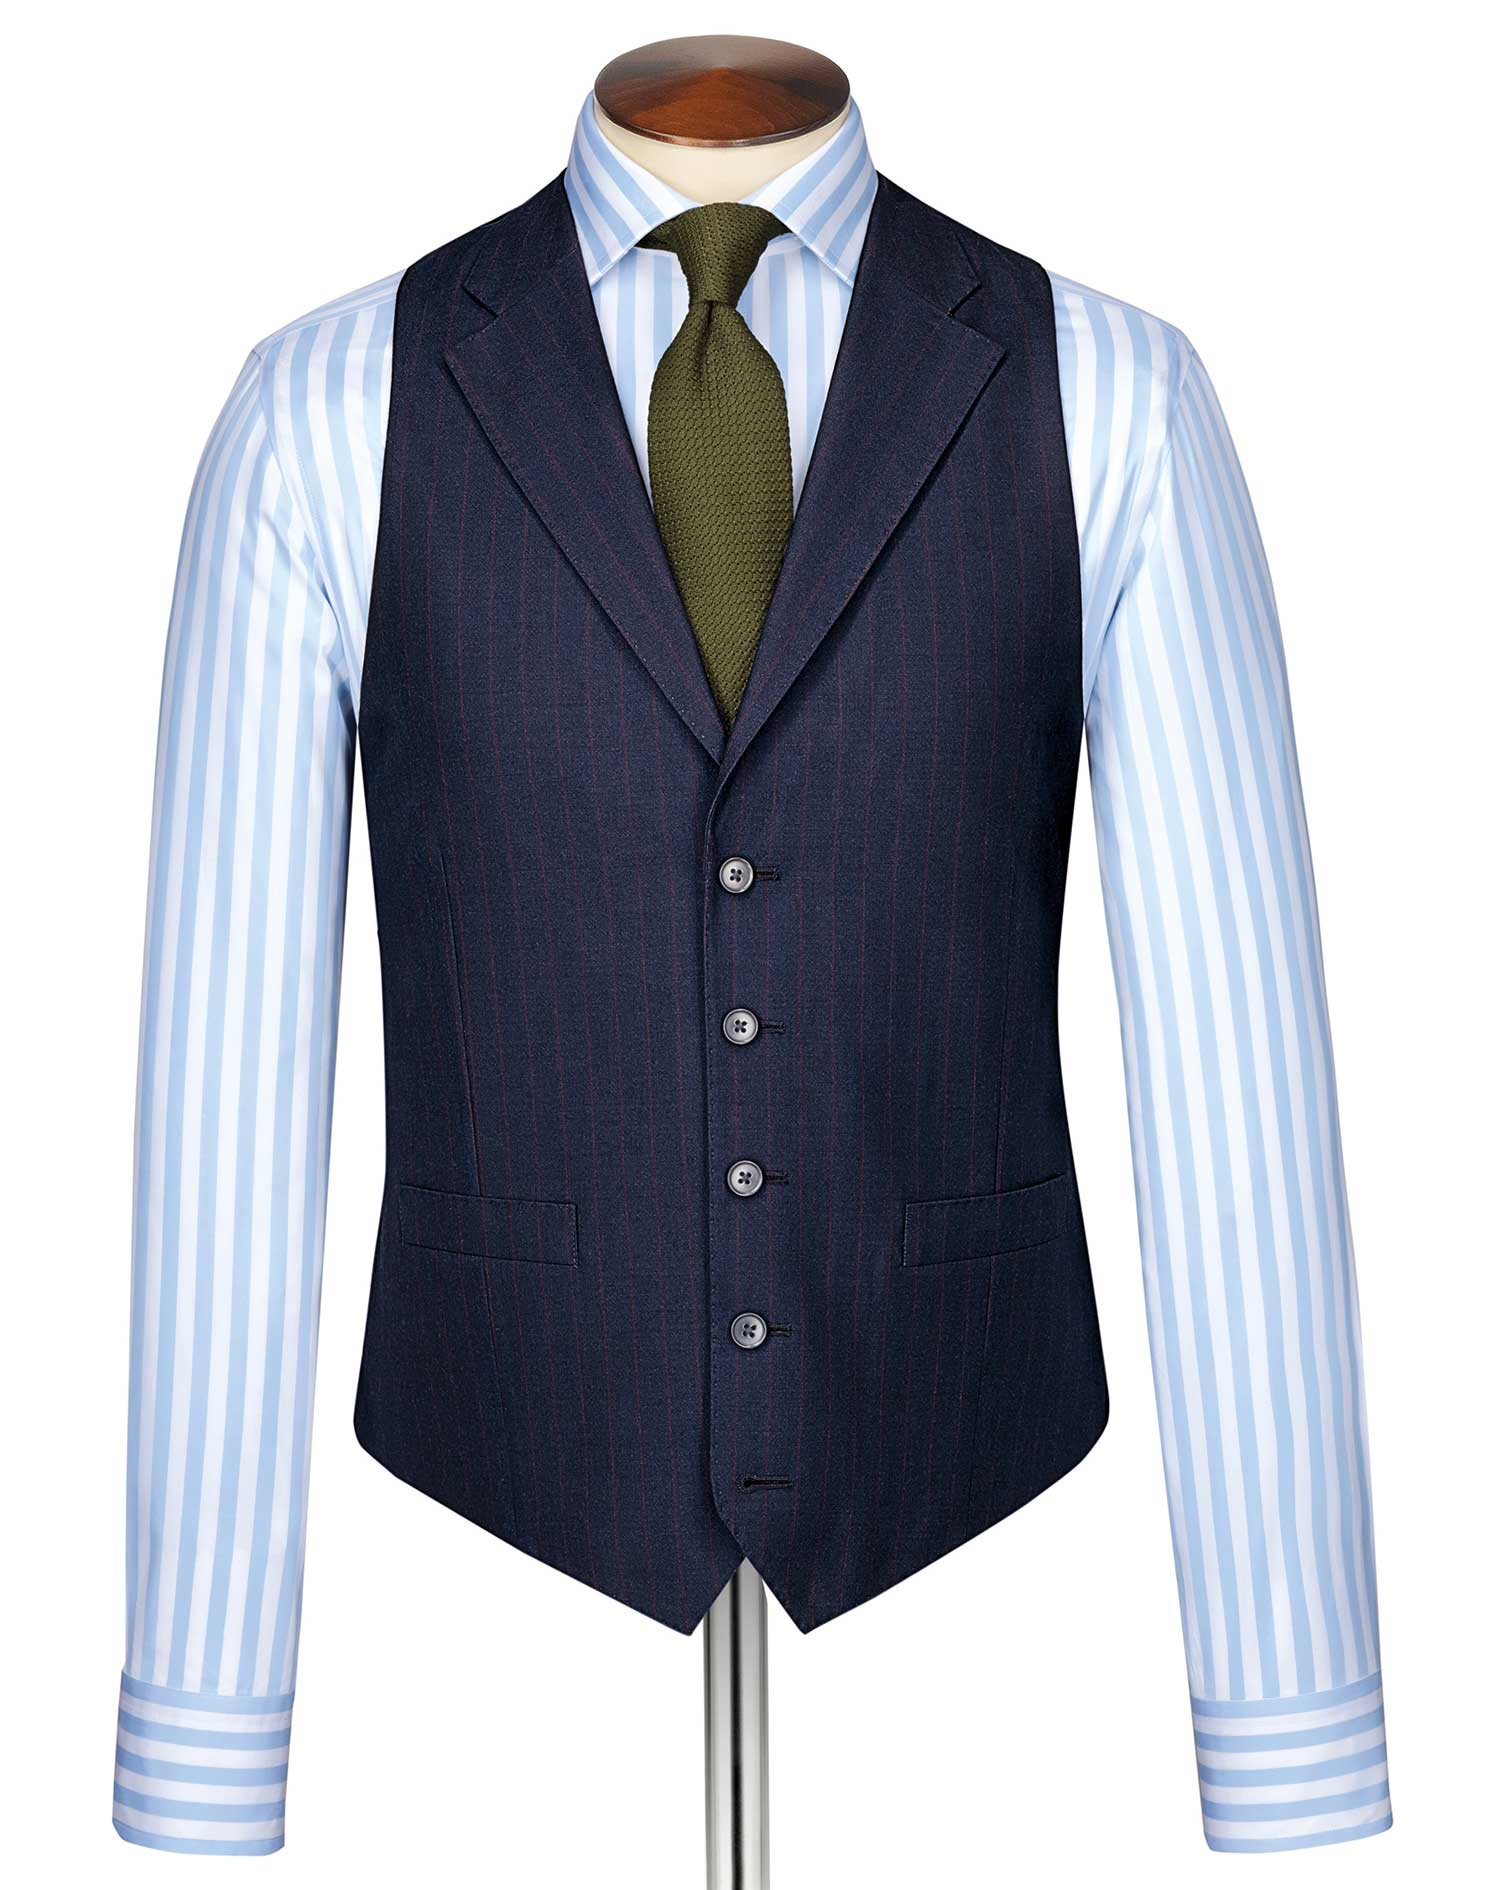 Blue Panama Business Suit Wool Waistcoat Size w40 by Charles Tyrwhitt